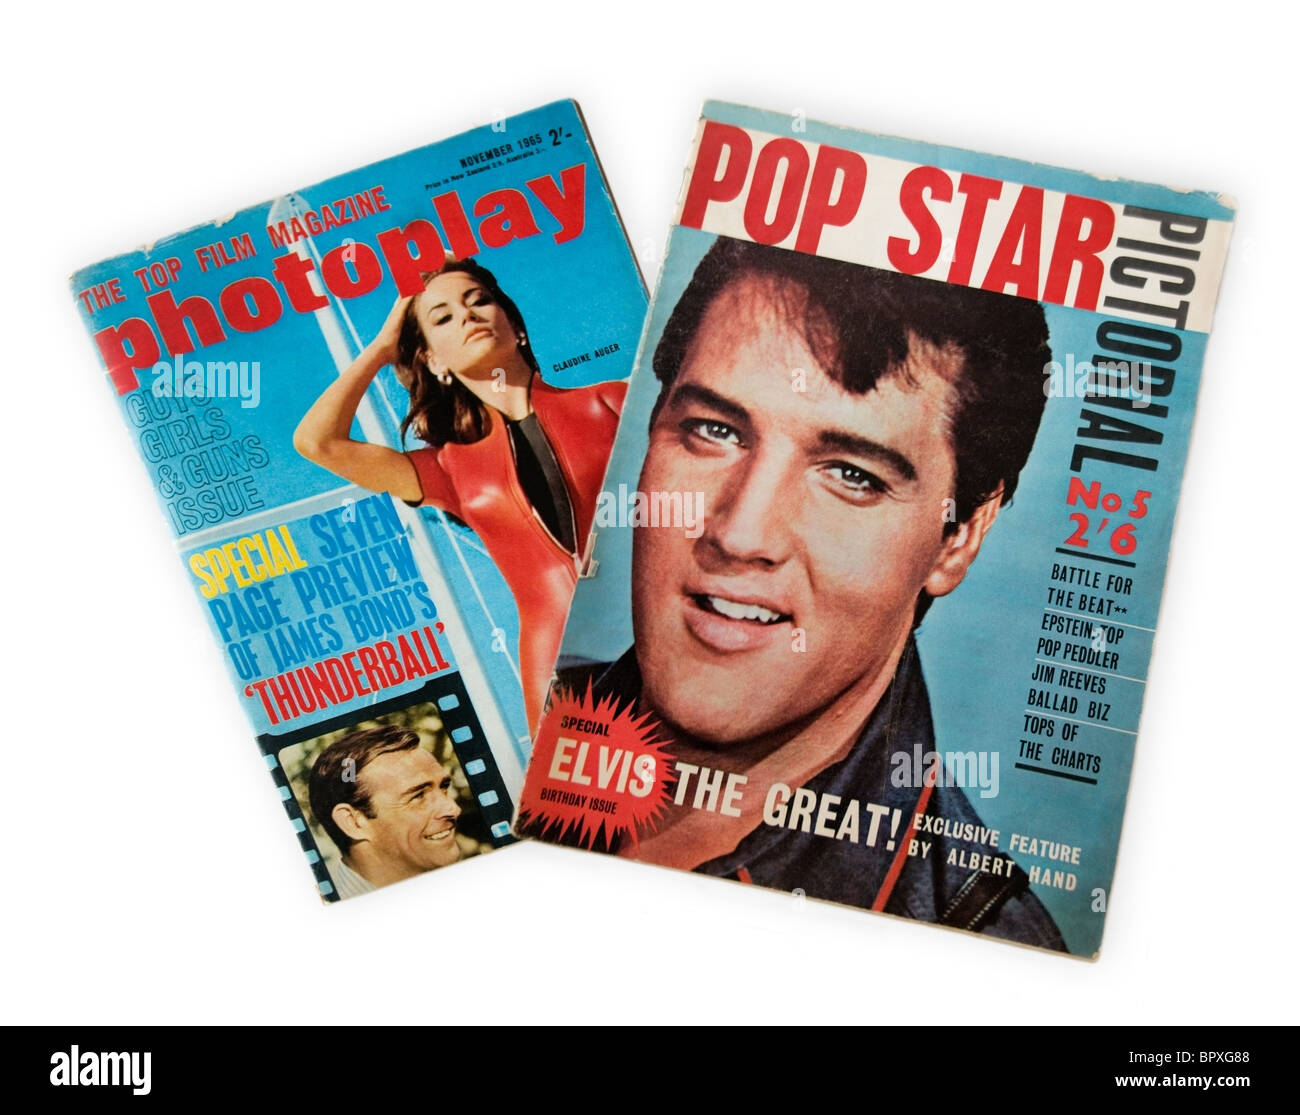 Deux magazines vintage et pop star Photoplay Pictorial de 1965 sur un fond blanc Photo Stock